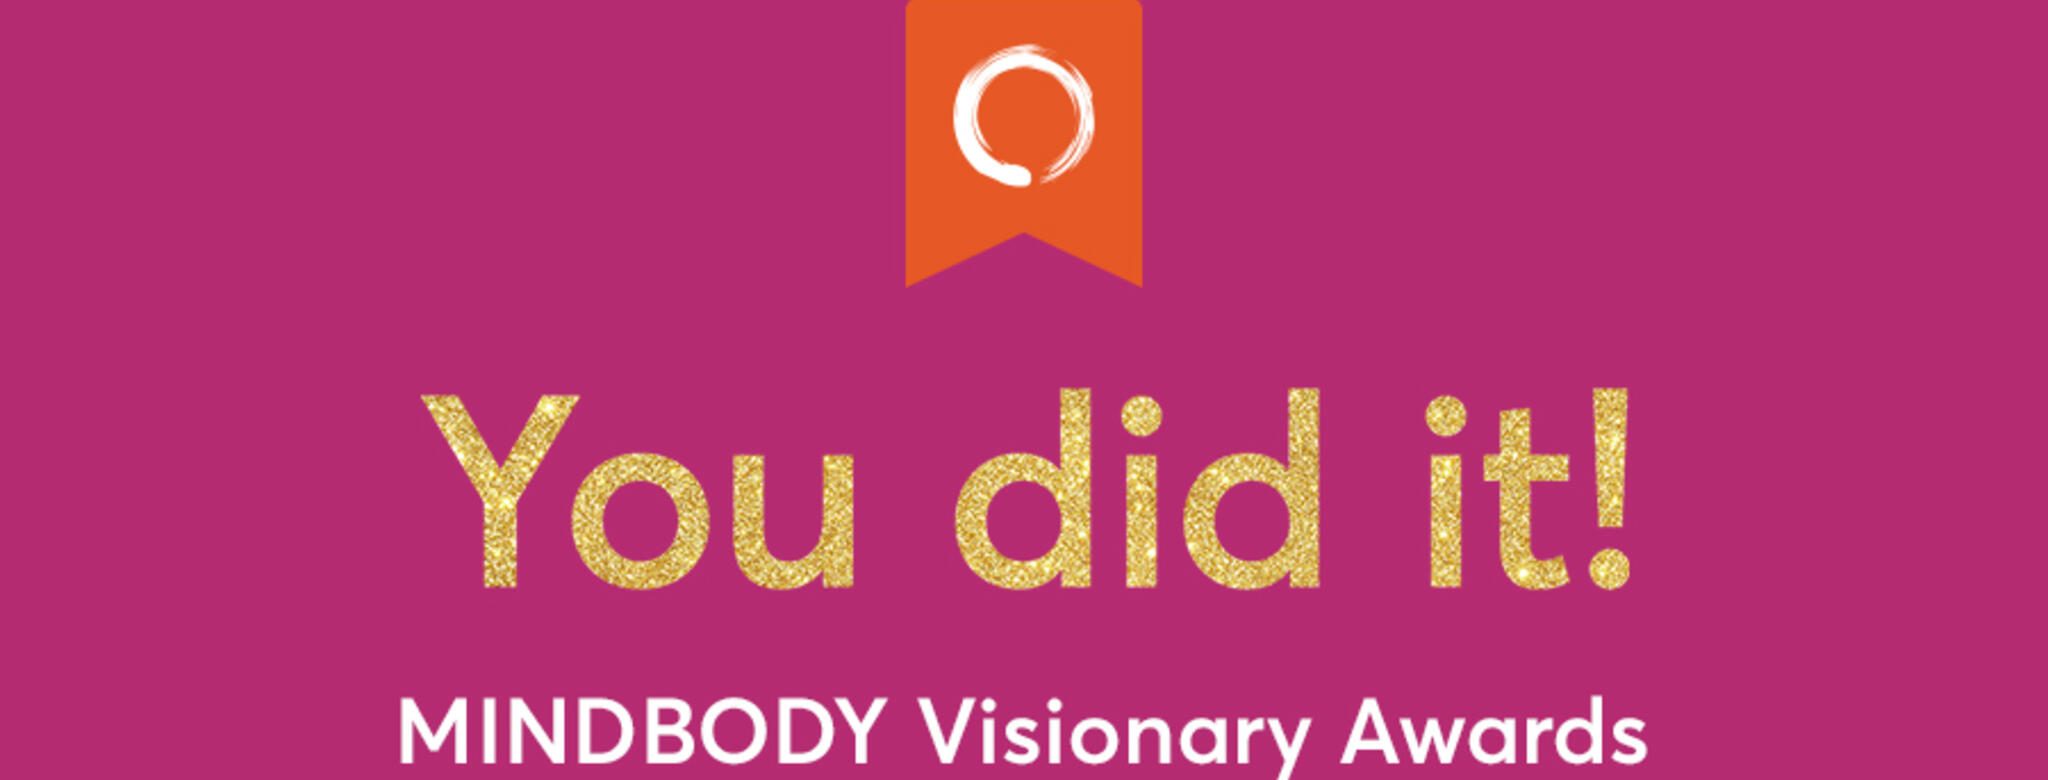 MINDBODY Visionary Awards